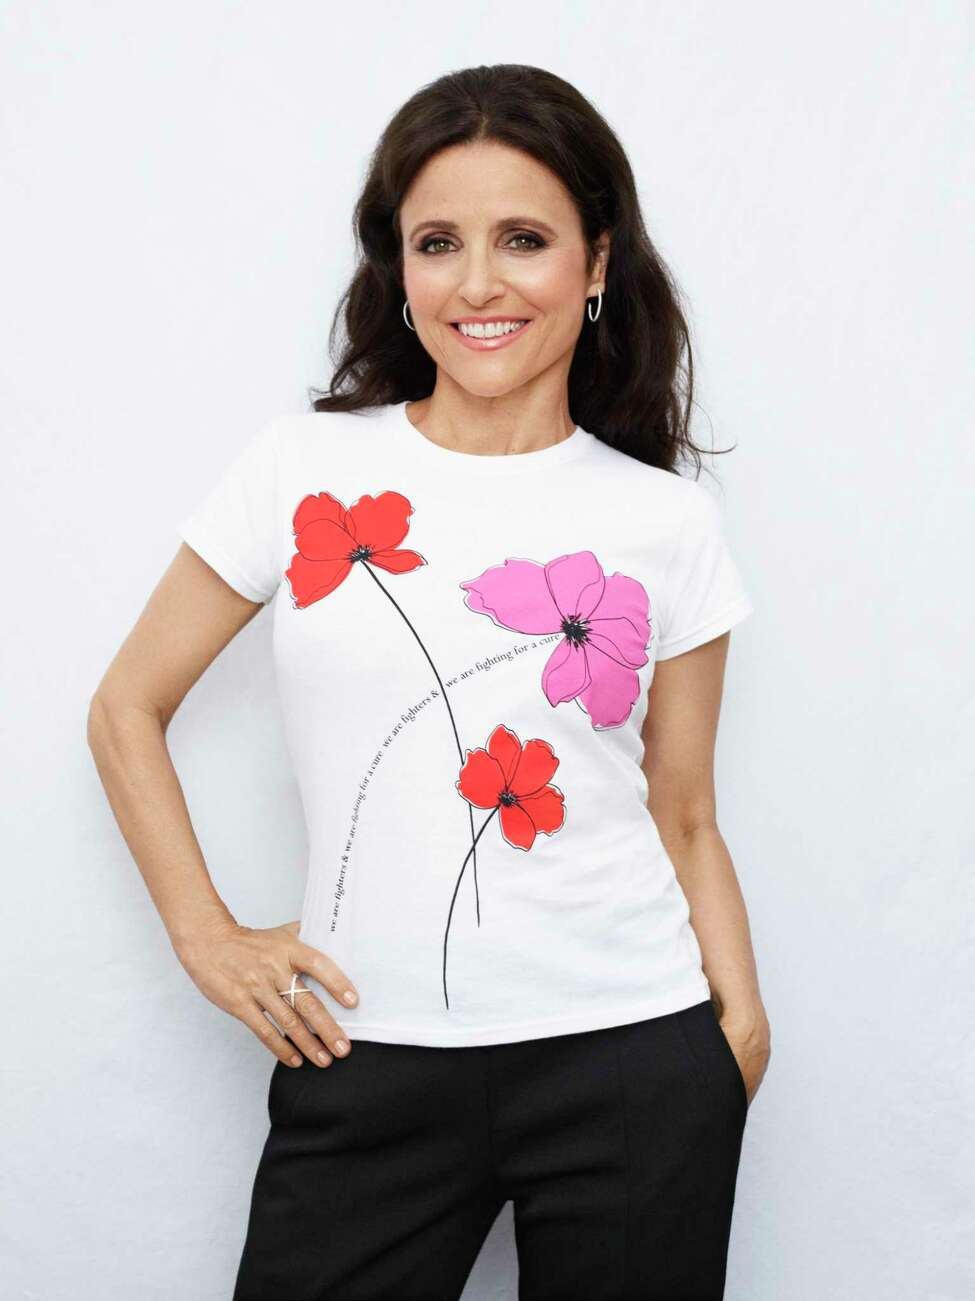 This undated image released by Saks Fifth Avenue shows actress Julia Louis-Dreyfus, revealed last September that she had been diagnosed with breast cancer, in a flower-adorned T-shirt as part of Saks Fifth Avenue's 20th year raising money through its Key to the Cure program. The limited edition shirt will sell for $35 at Saks stores Oct. 1-31, with 100 percent of proceeds going to the AiRS Foundation, a nonprofit Louis-Dreyfus supports for its work in helping women with the costs of breast reconstruction after mastectomy. (Saks Fifth Avenue via AP)